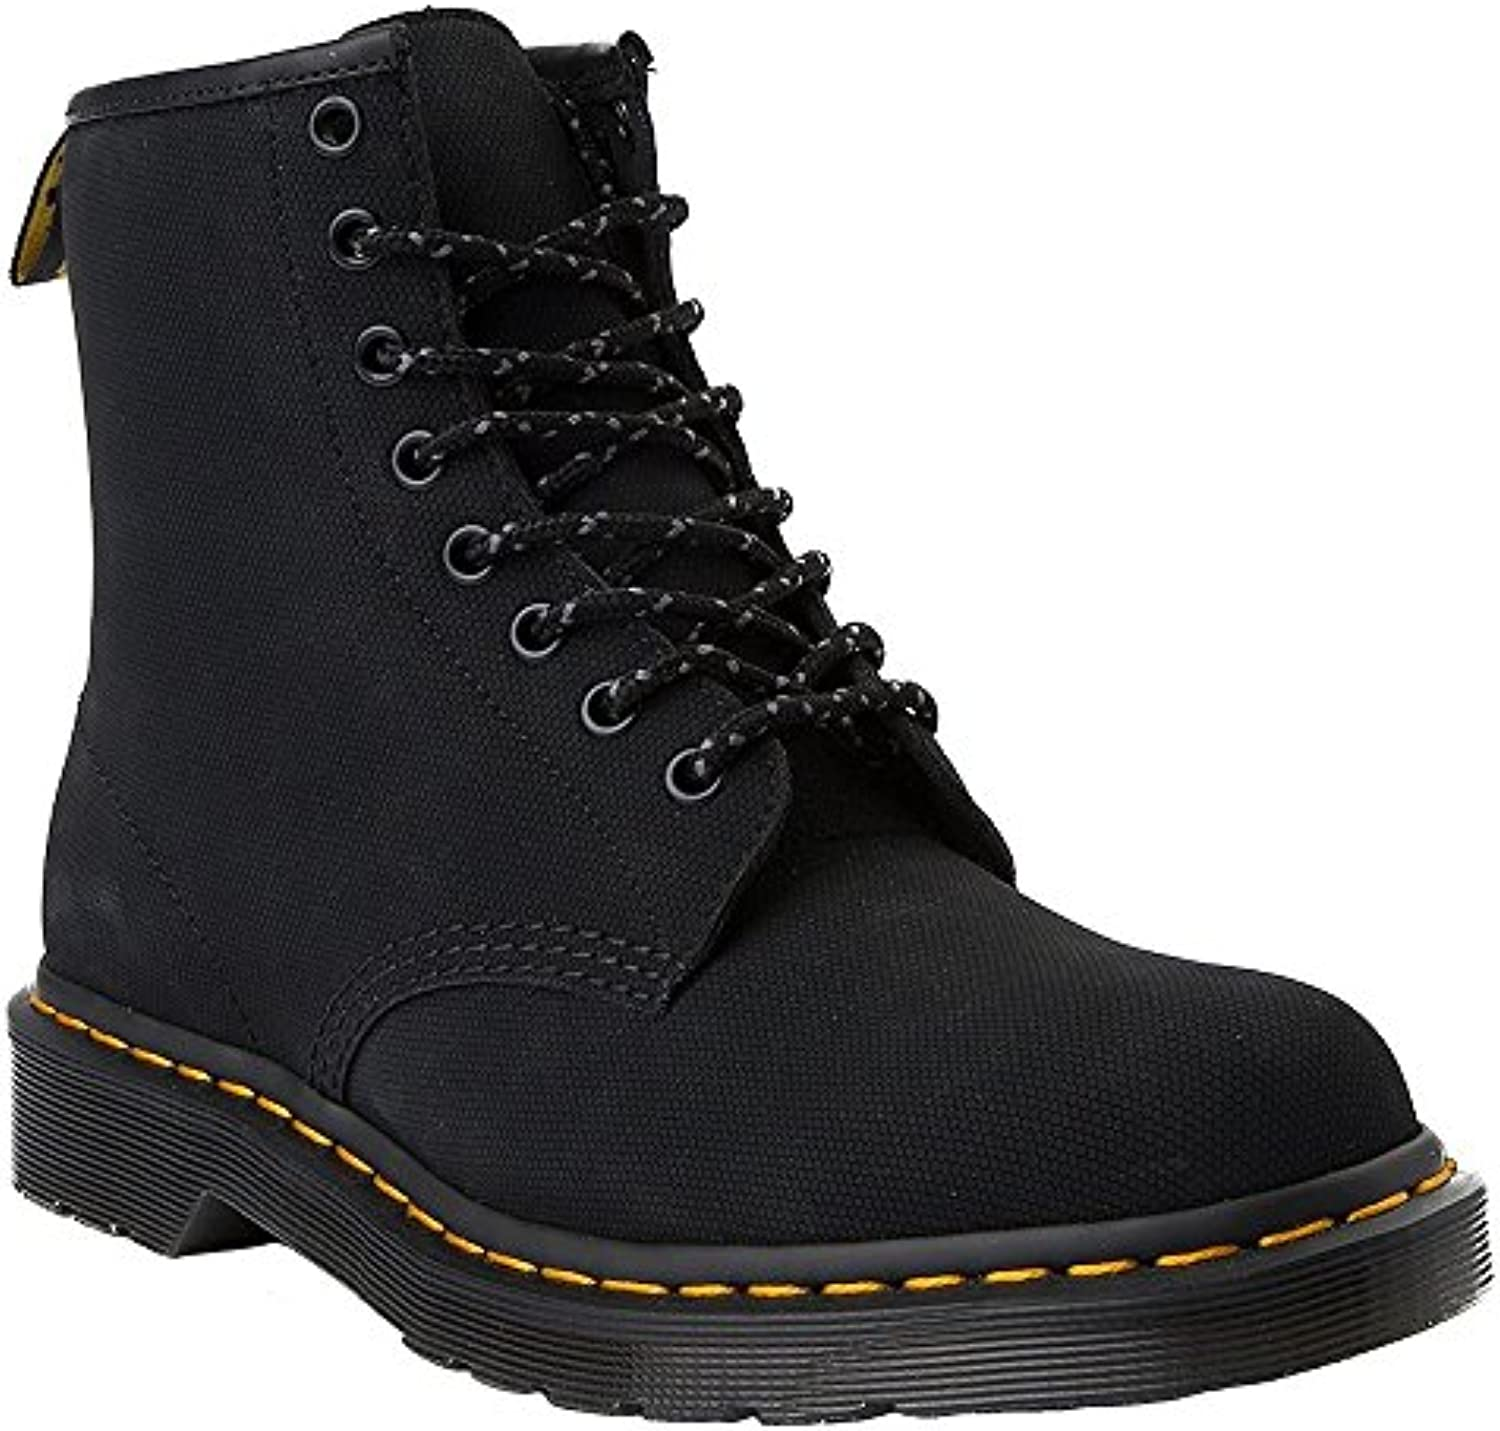 Dr.Martens Womens 1460 8 Eyelet Pebble Leather Boots